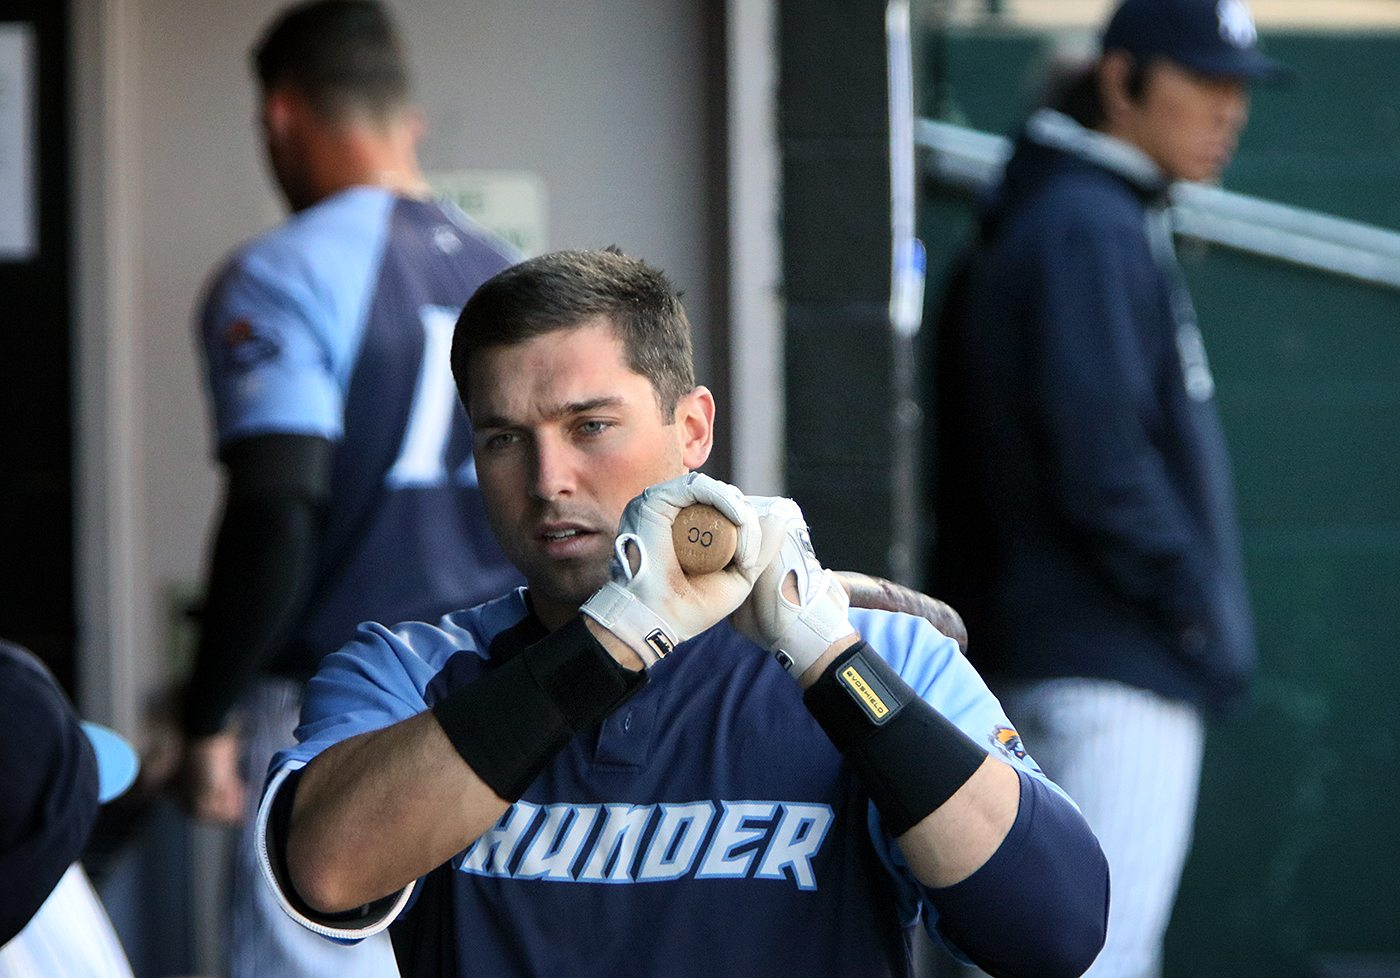 Trenton Thunder outfielder Jake Cave in the dugout during a game against the Portland Sea Dogs at Arm & Hammer Park in Trenton on Tuesday, April 12, 2016. Photo by Martin Griff